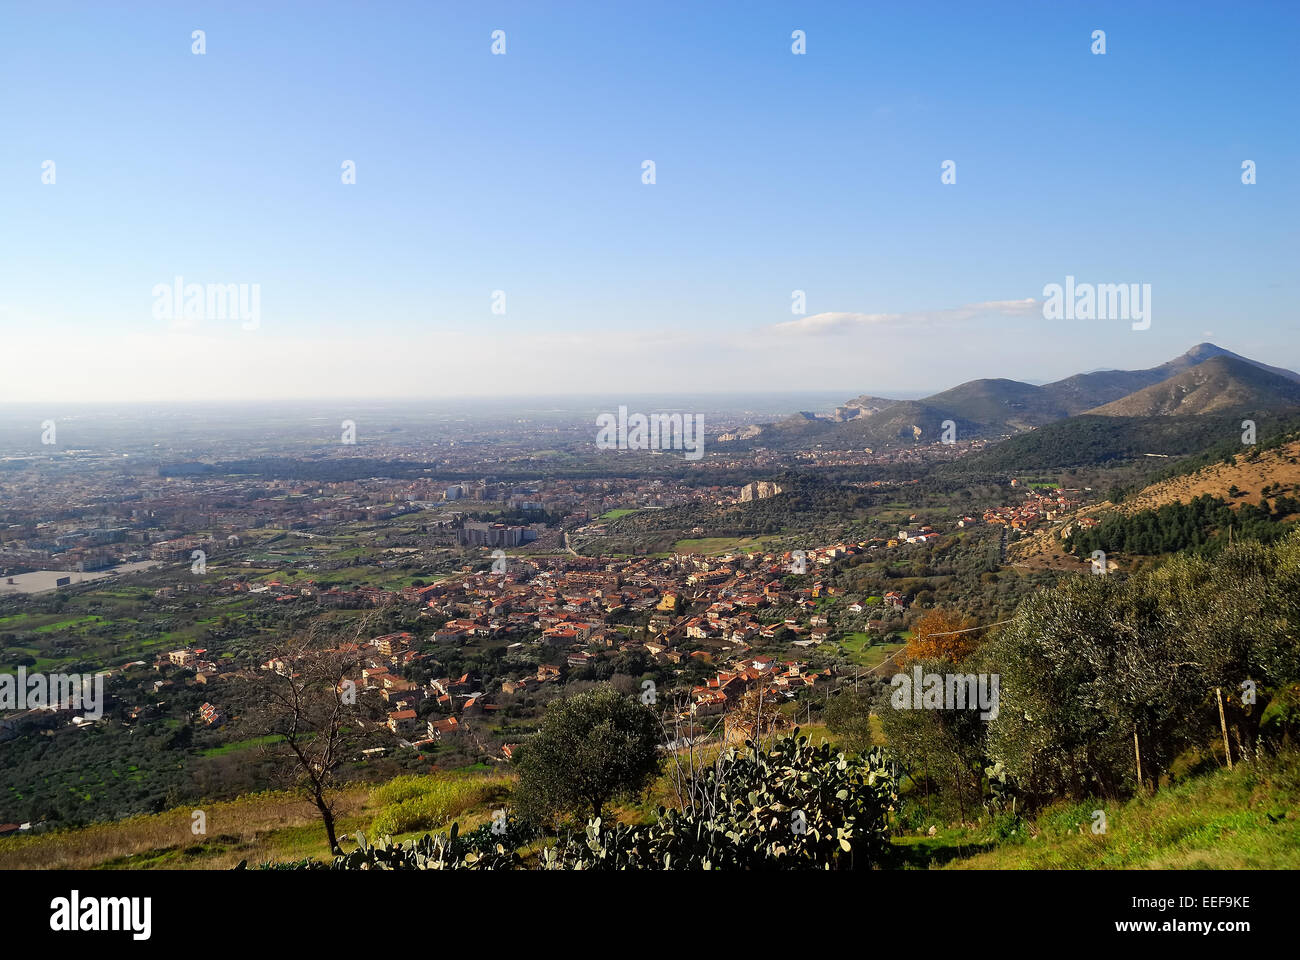 Casertavecchia, Italy, viewpoint. The view over Campania plains. - Stock Image